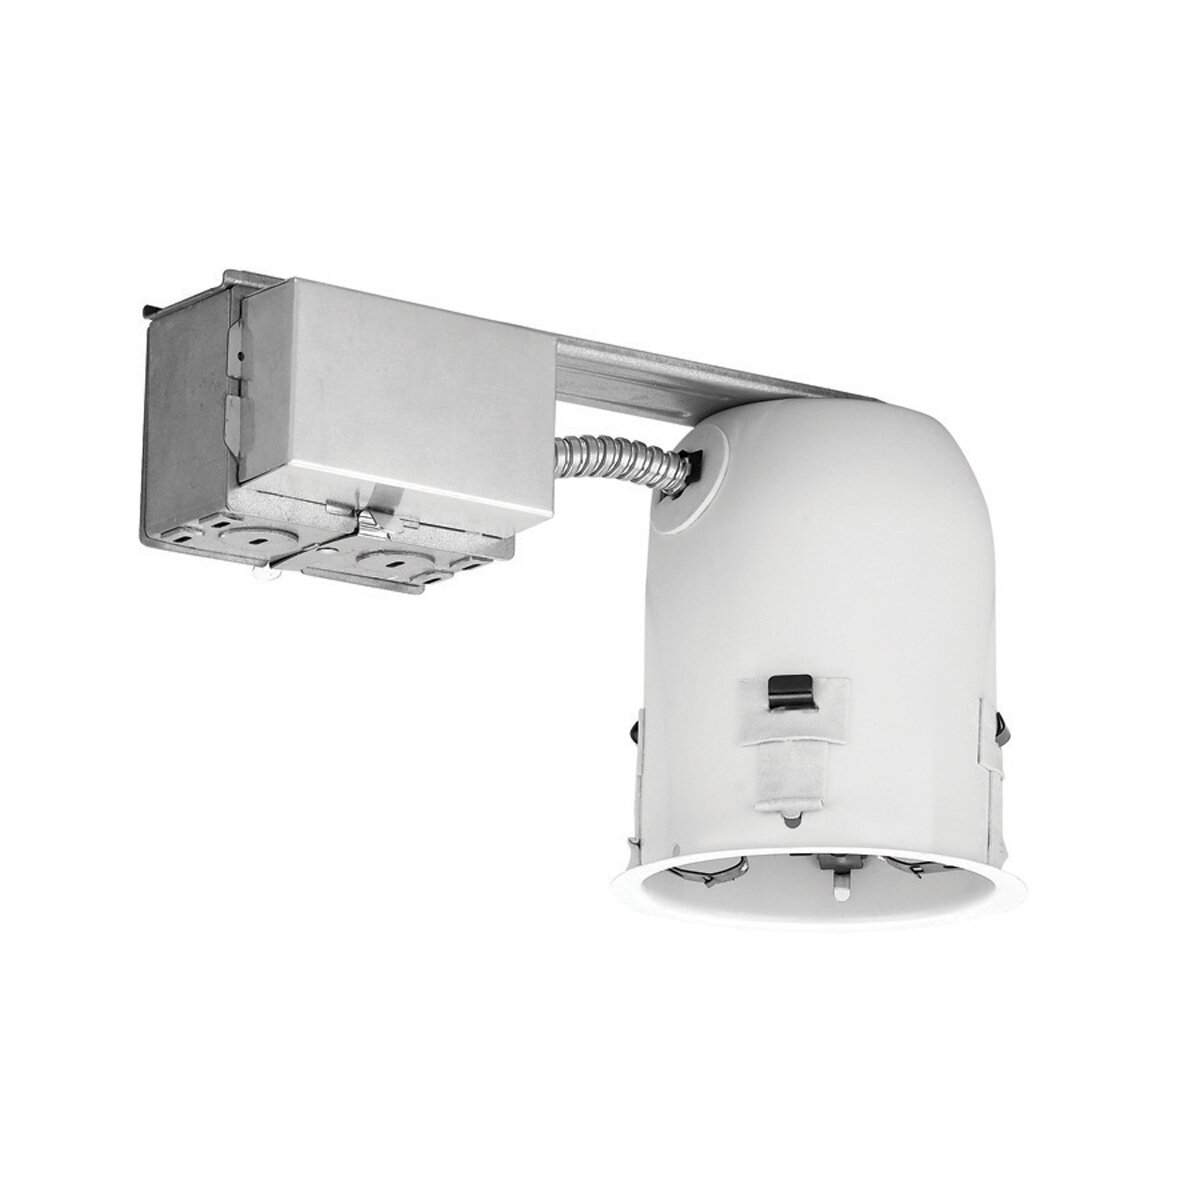 4 Recessed Lighting Housing Ic Remodel : Wac lighting compact fluorescent ic shallow remodel